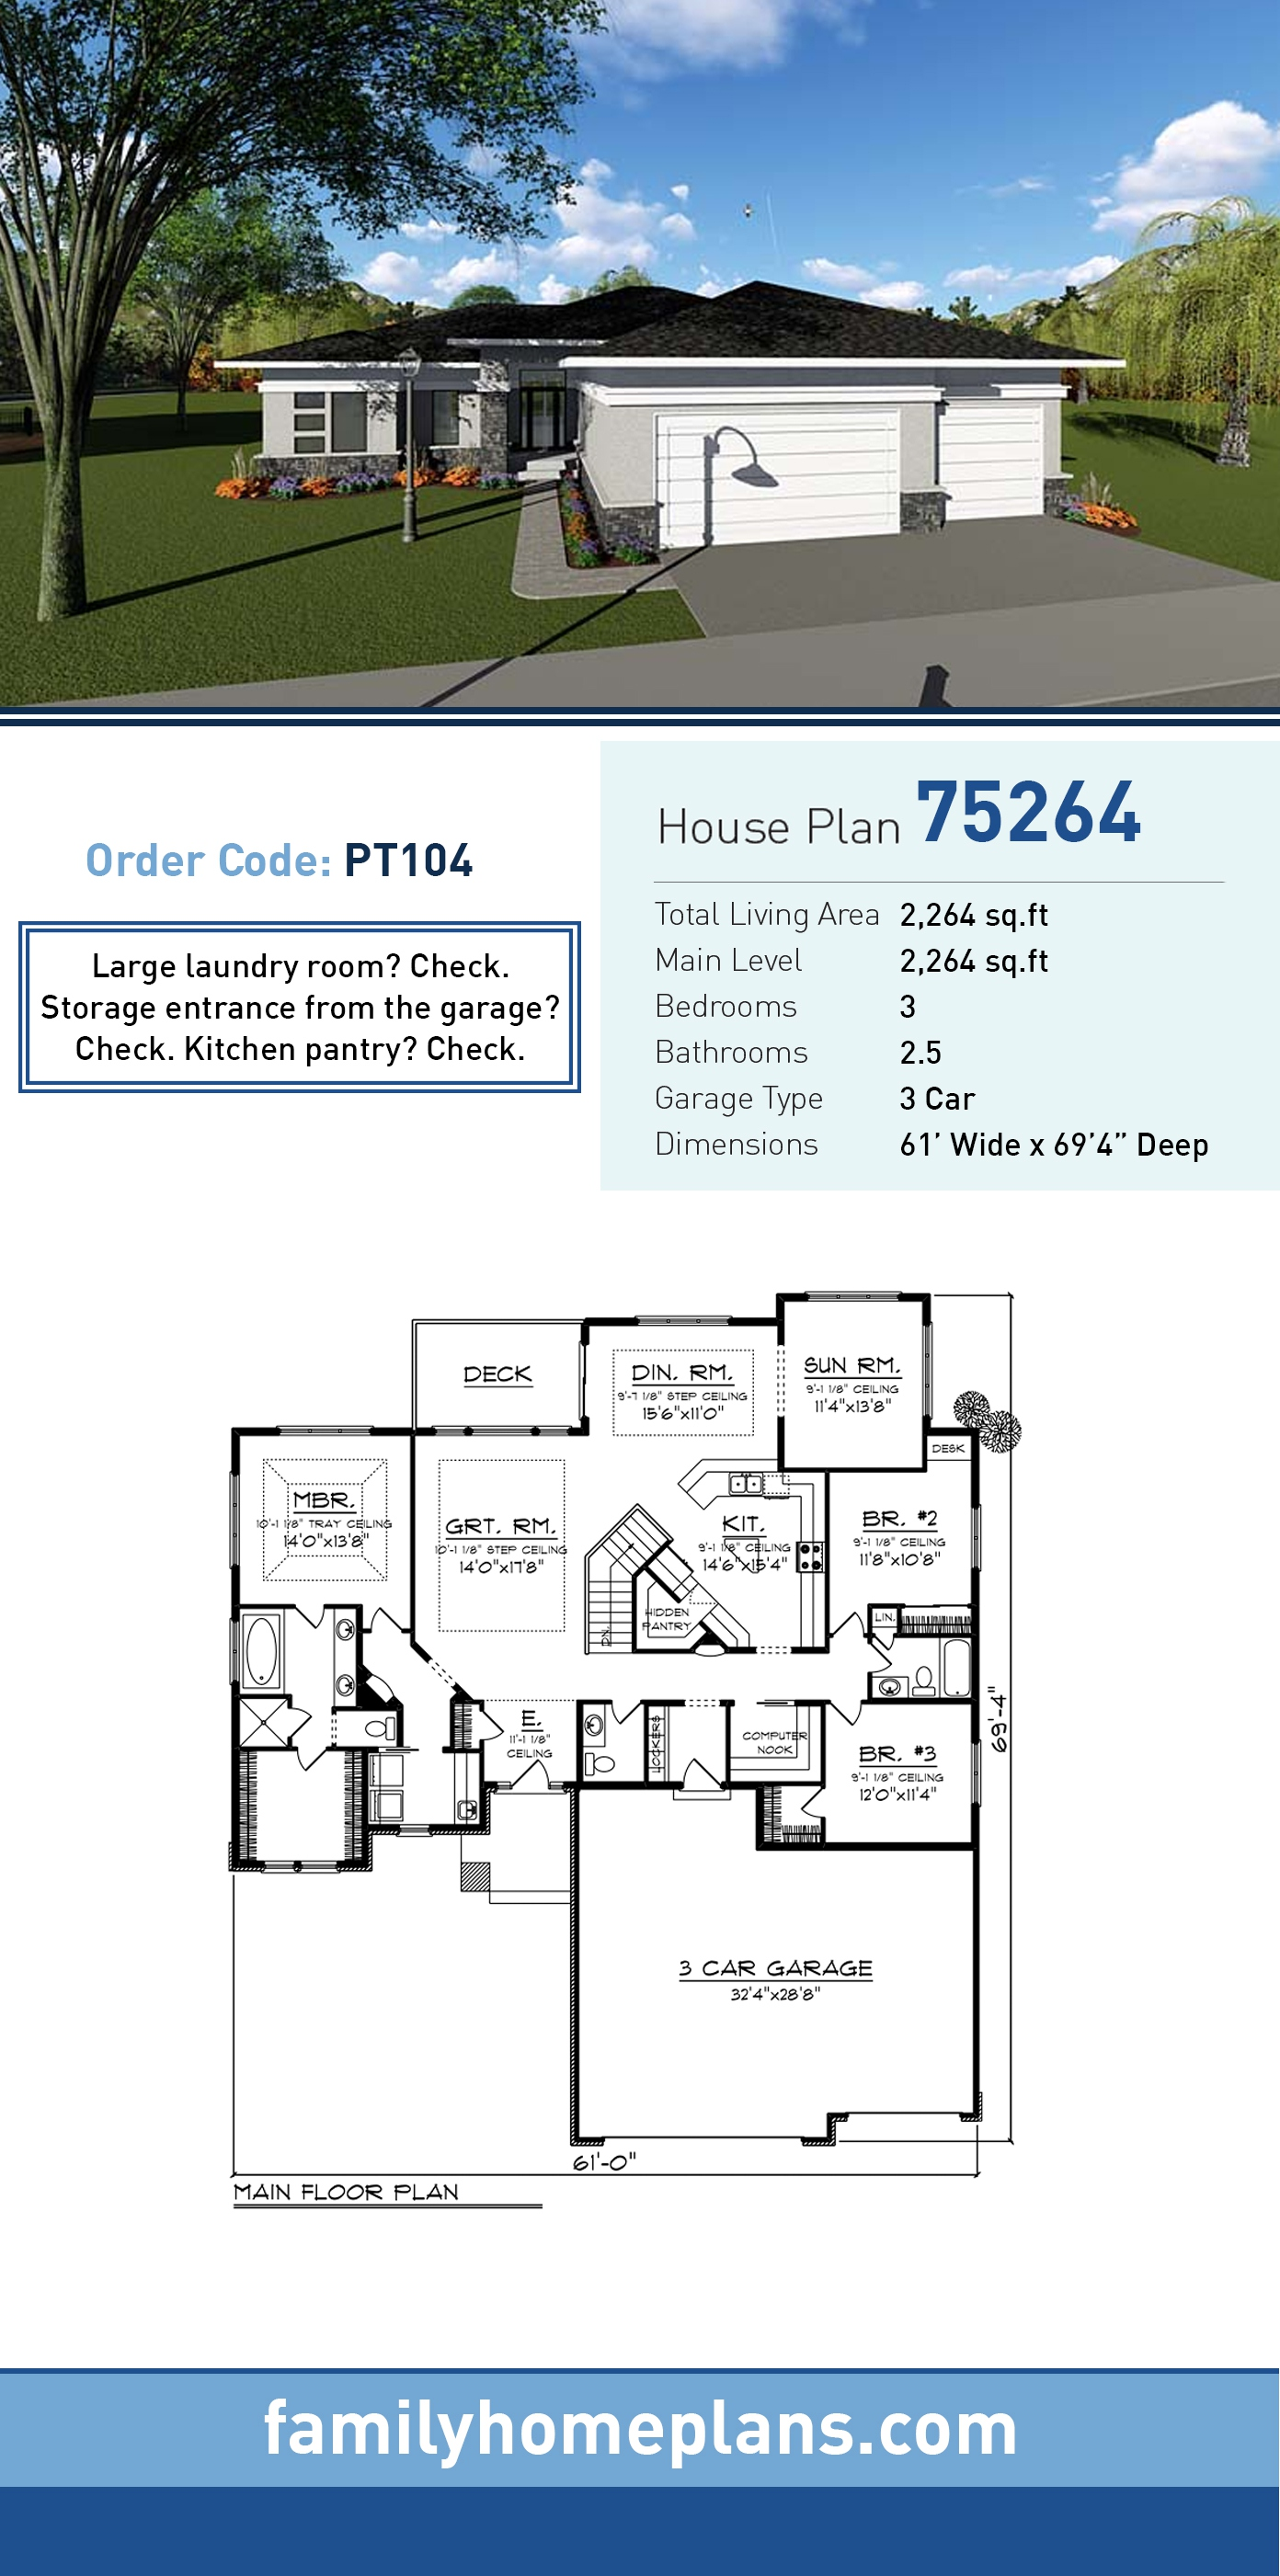 Contemporary, Ranch, Southwest House Plan 75264 with 3 Beds, 3 Baths, 3 Car Garage